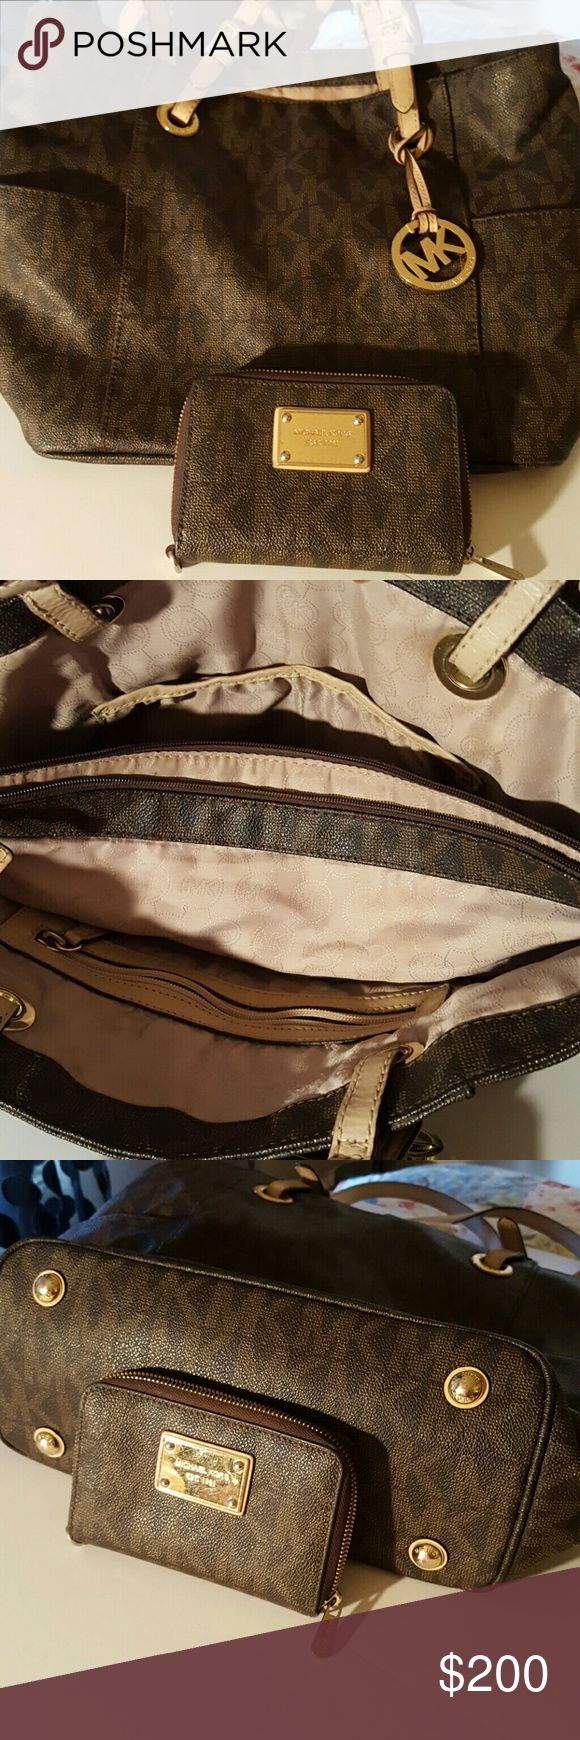 MK BAG IN PRISTINE CONDITION WITH WALLET Gorgeous Brown MK bag n matching wallet Michael Kors Bags Shoulder Bags